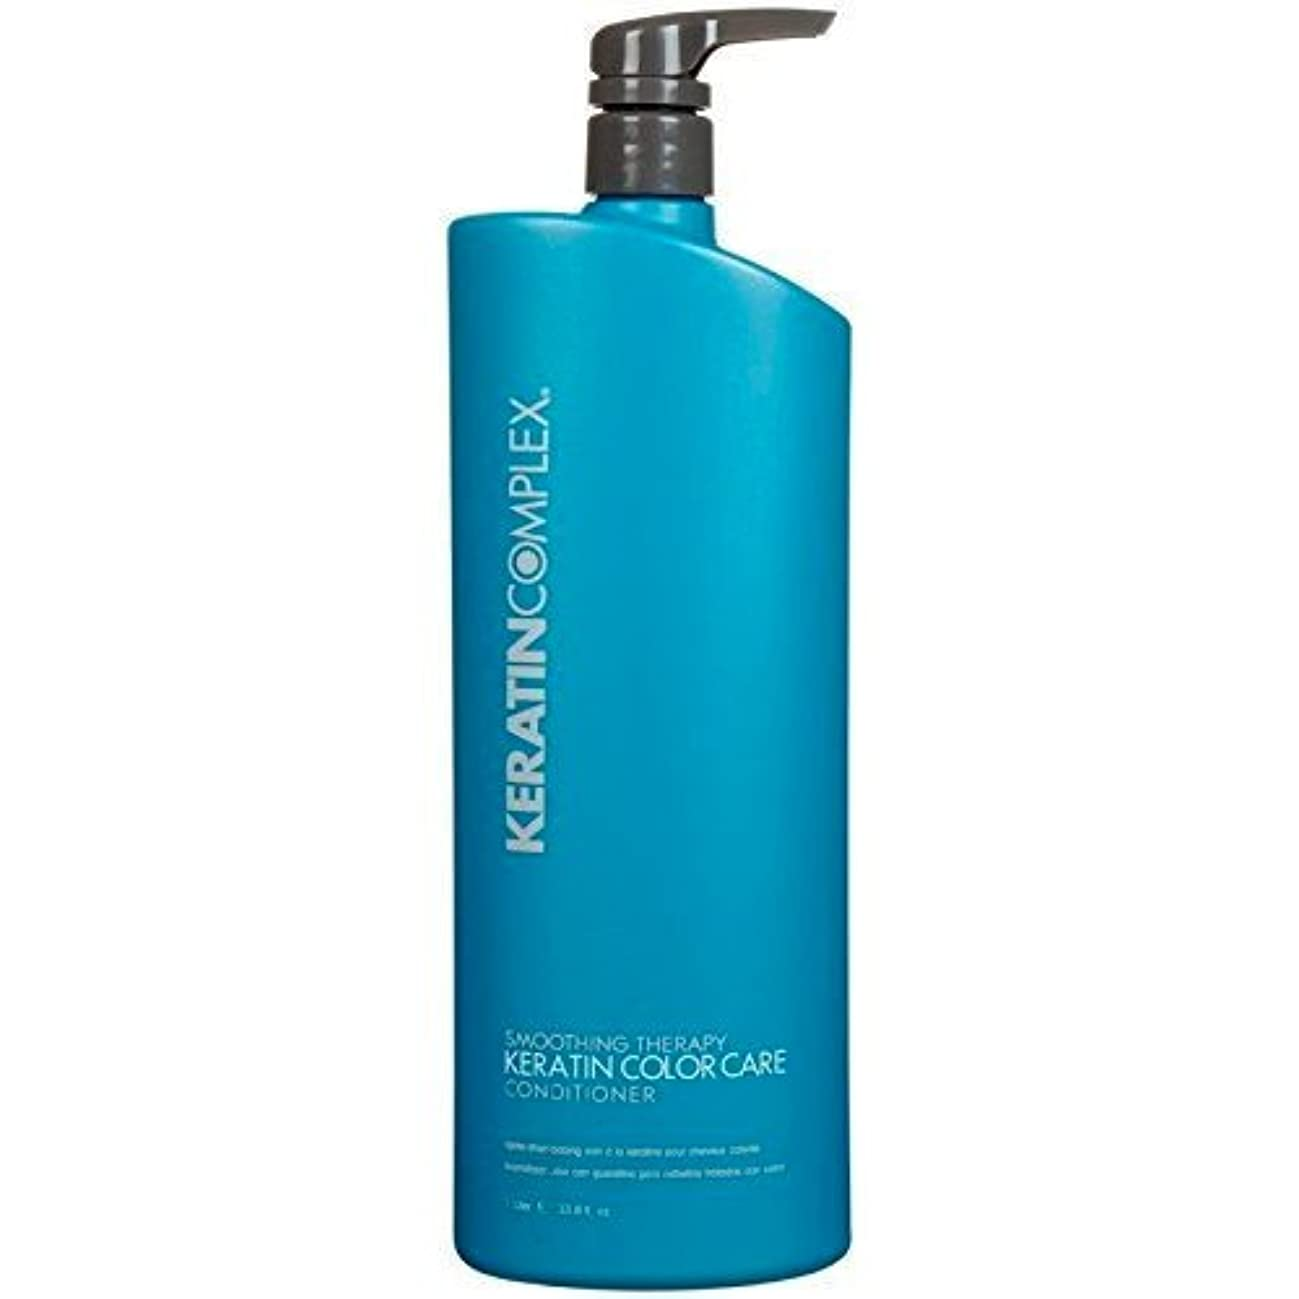 若者一貫性のない貫入ケラチンコンプレックス Smoothing Therapy Keratin Color Care Conditioner (For All Hair Types) 1000ml